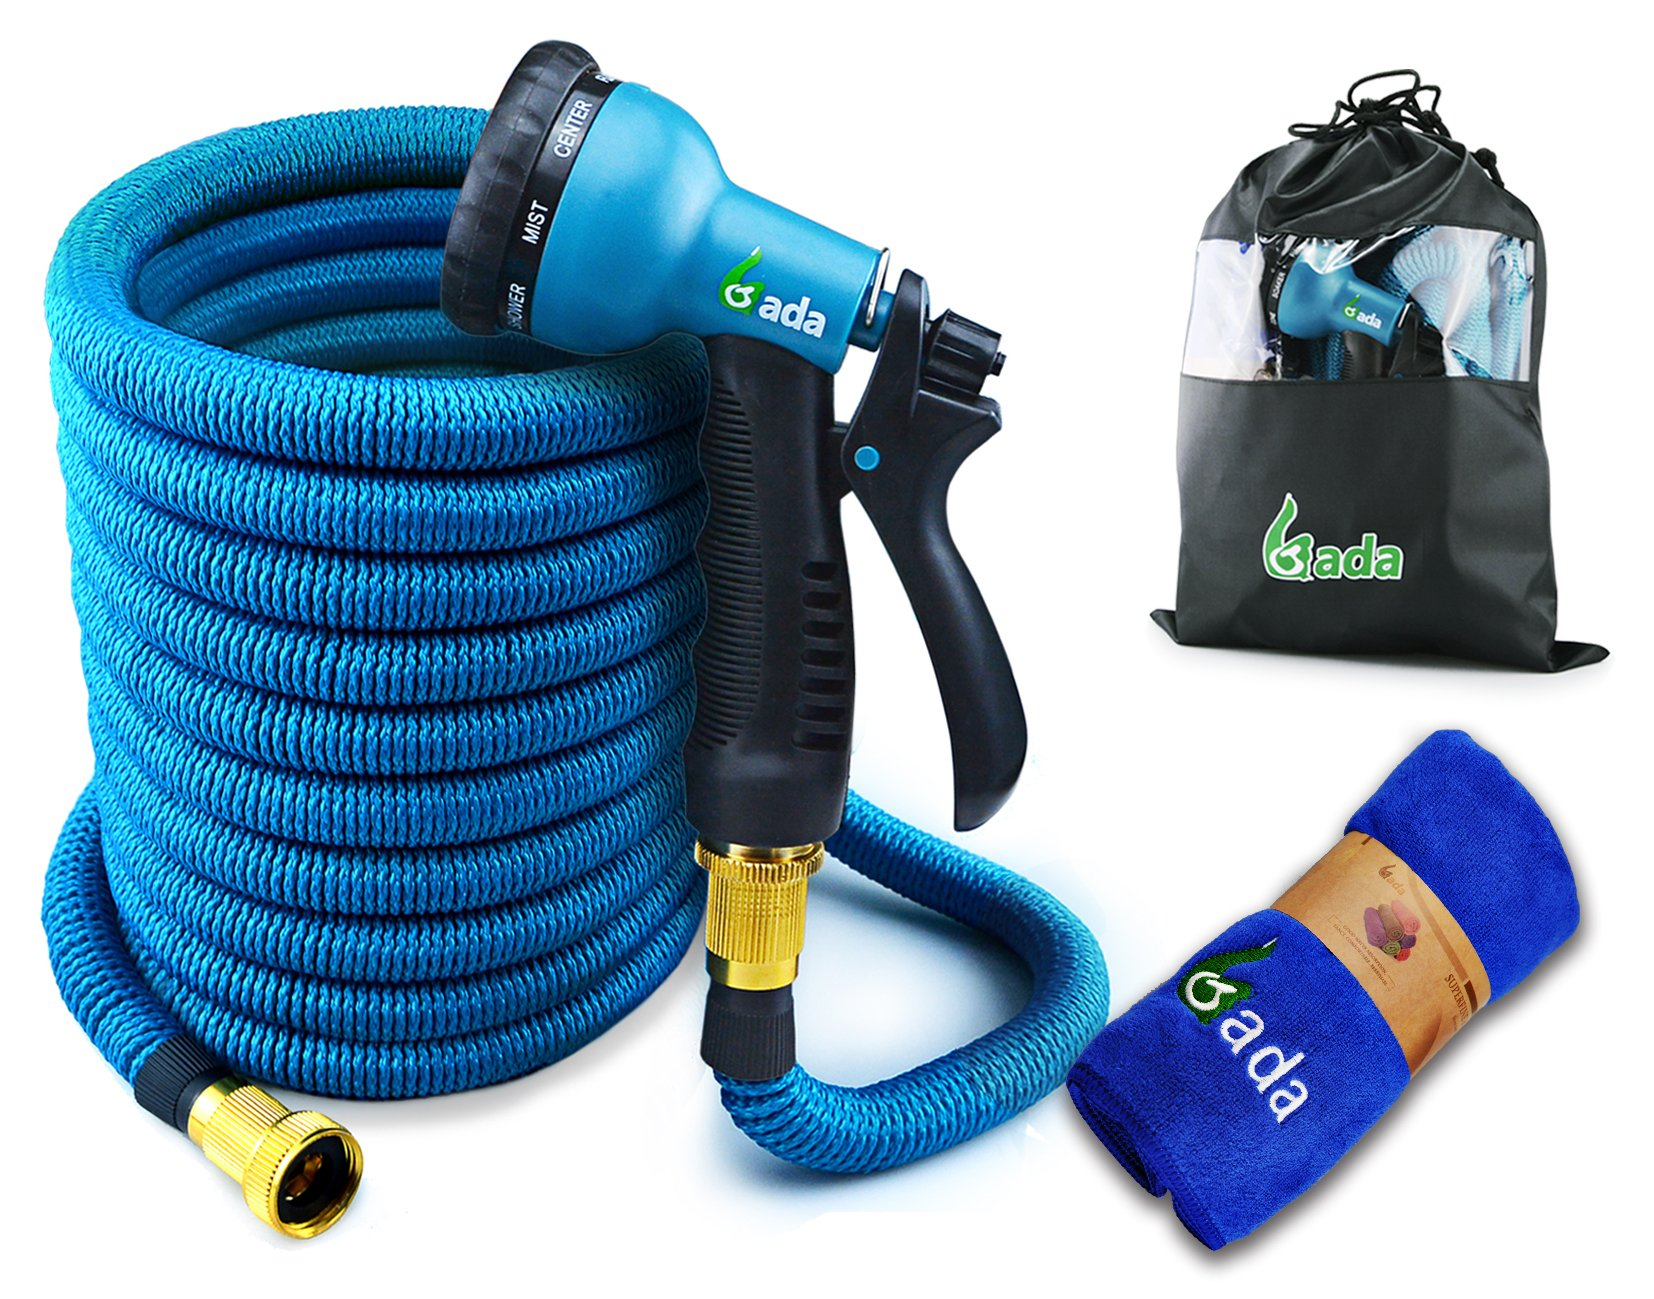 Gada Garden Hose -Expandable Water Hoses Set 8-Way Spray Nozzle - STRONG Lightweight Coil Flex, Collapsible Flexible Expanding Three LAYER Latex in Pocket (100ft)